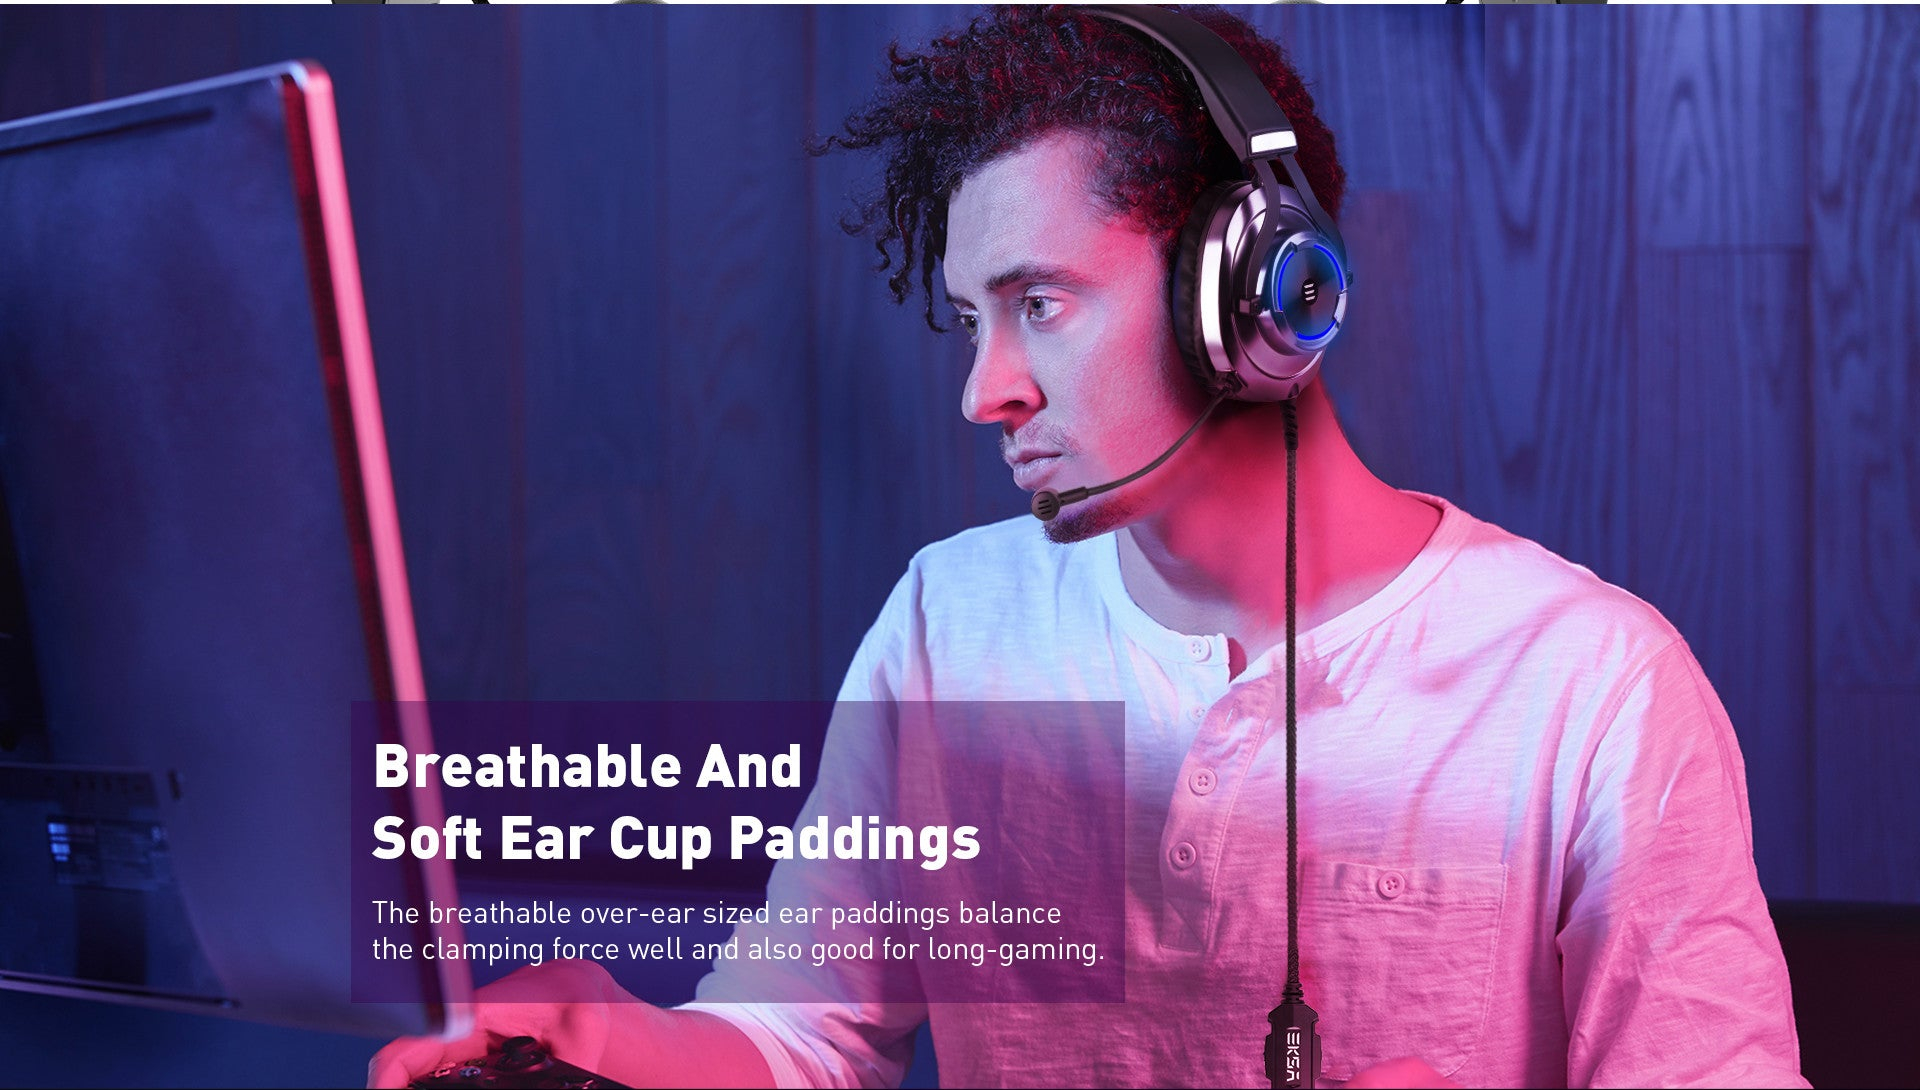 The breathable over-ear sized ear paddings balance the clamping force well and also good for long-gaming.